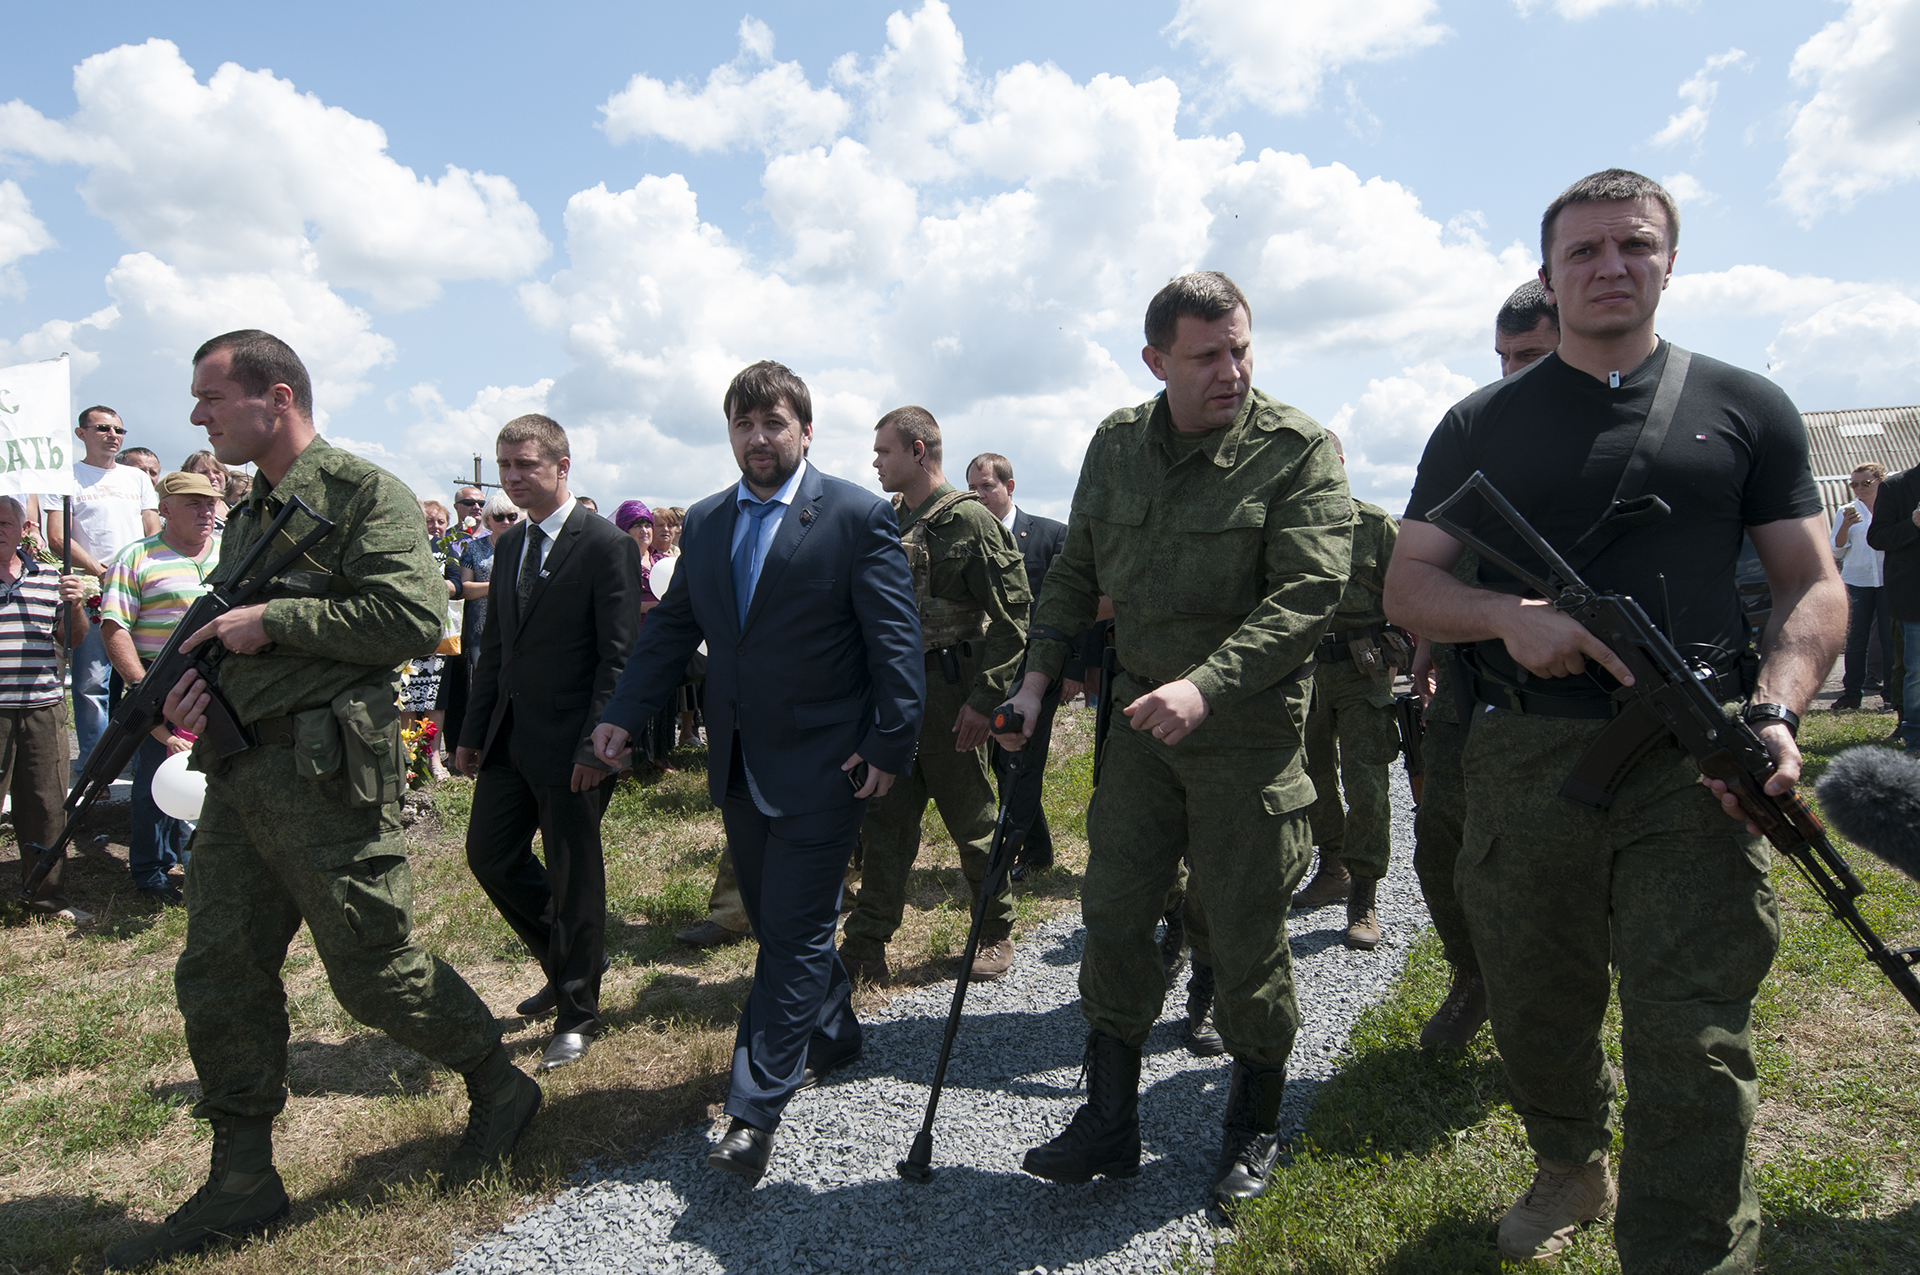 Rebel leaders Alexander Zakharchenko, second right, and Denis Pushilin, third right, arrive at the memorial ceremony at the crash site of the Malaysian Airlines MH17